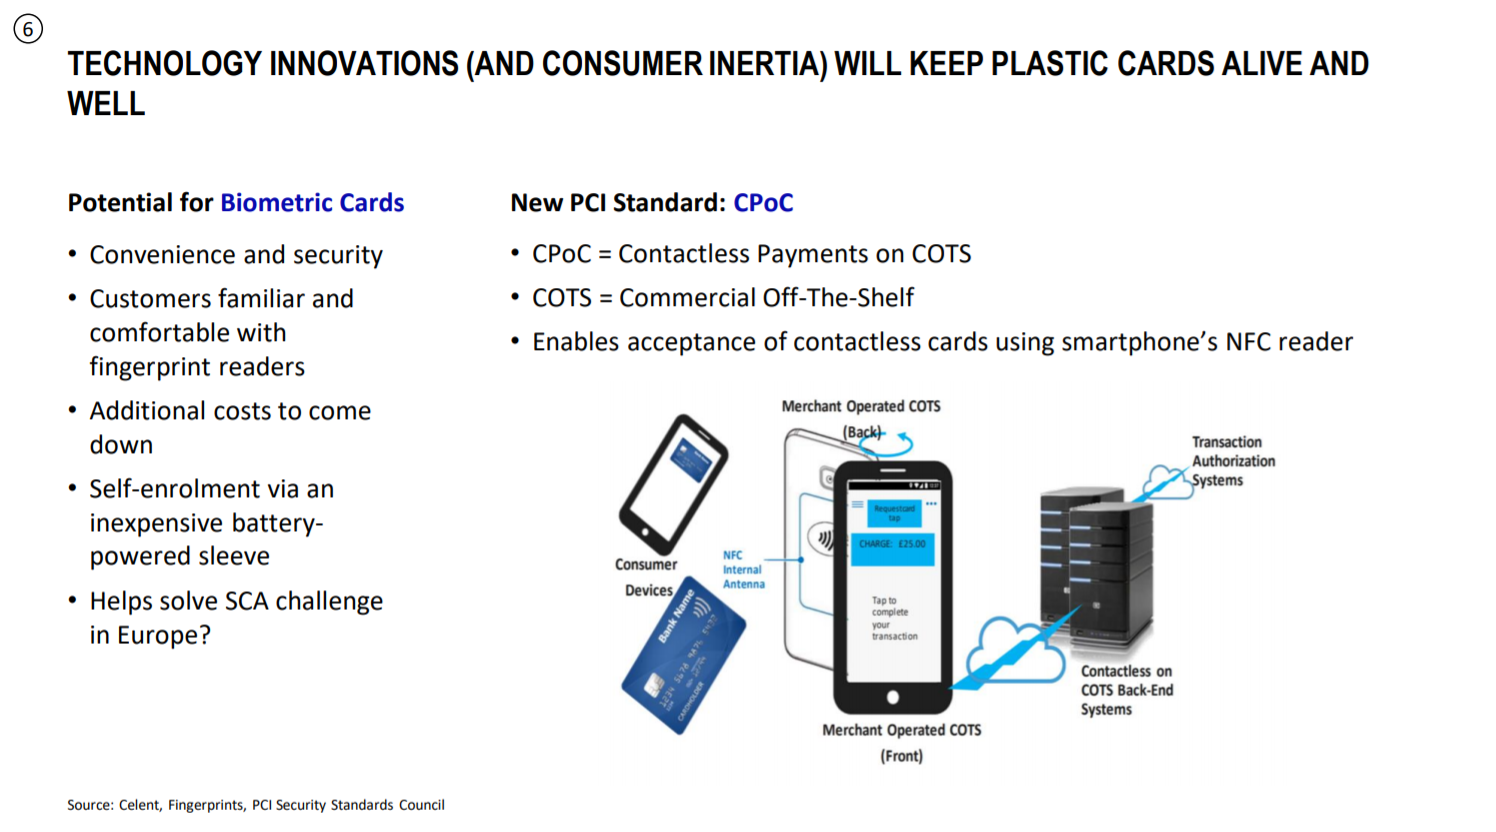 Technological Innovations Keeping Plastic Cards Alive